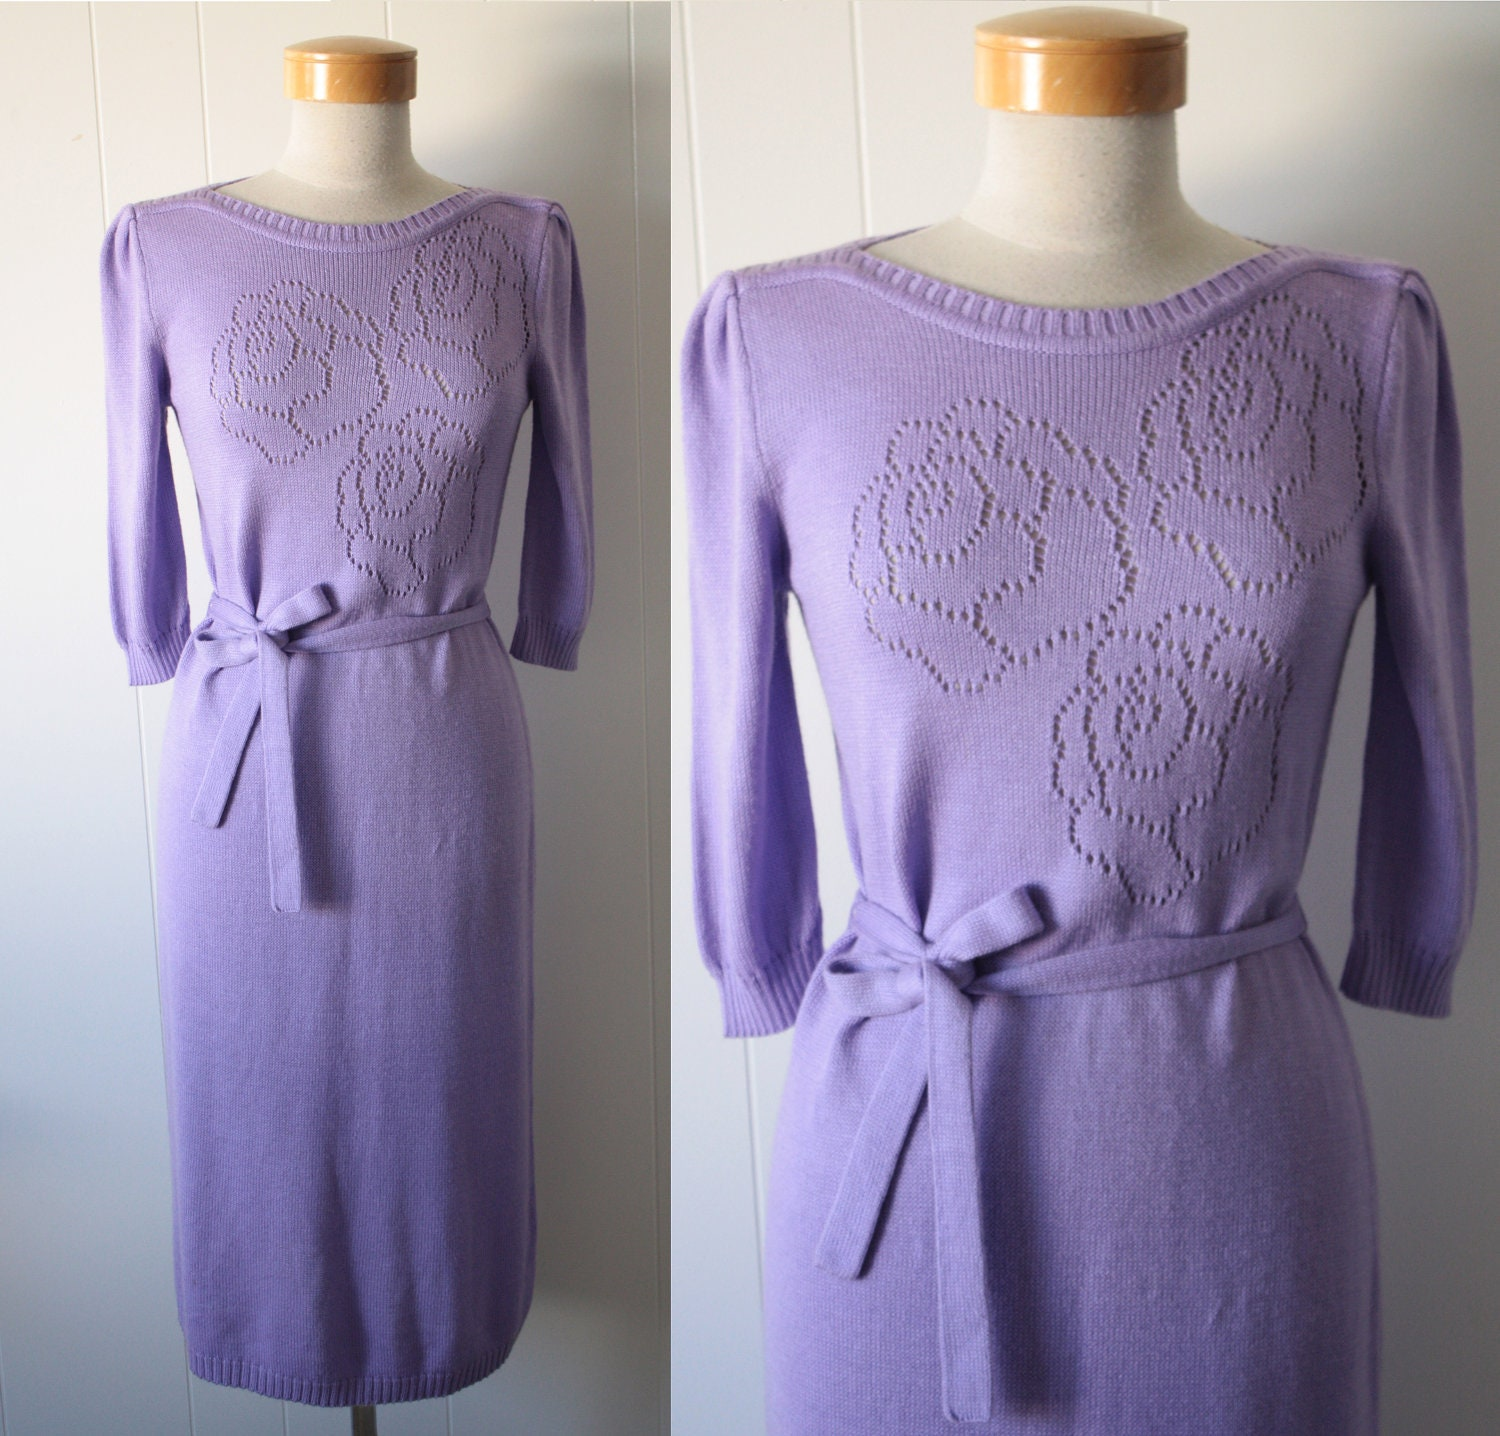 Clothing and accessories from the past for by BringItOnVintage